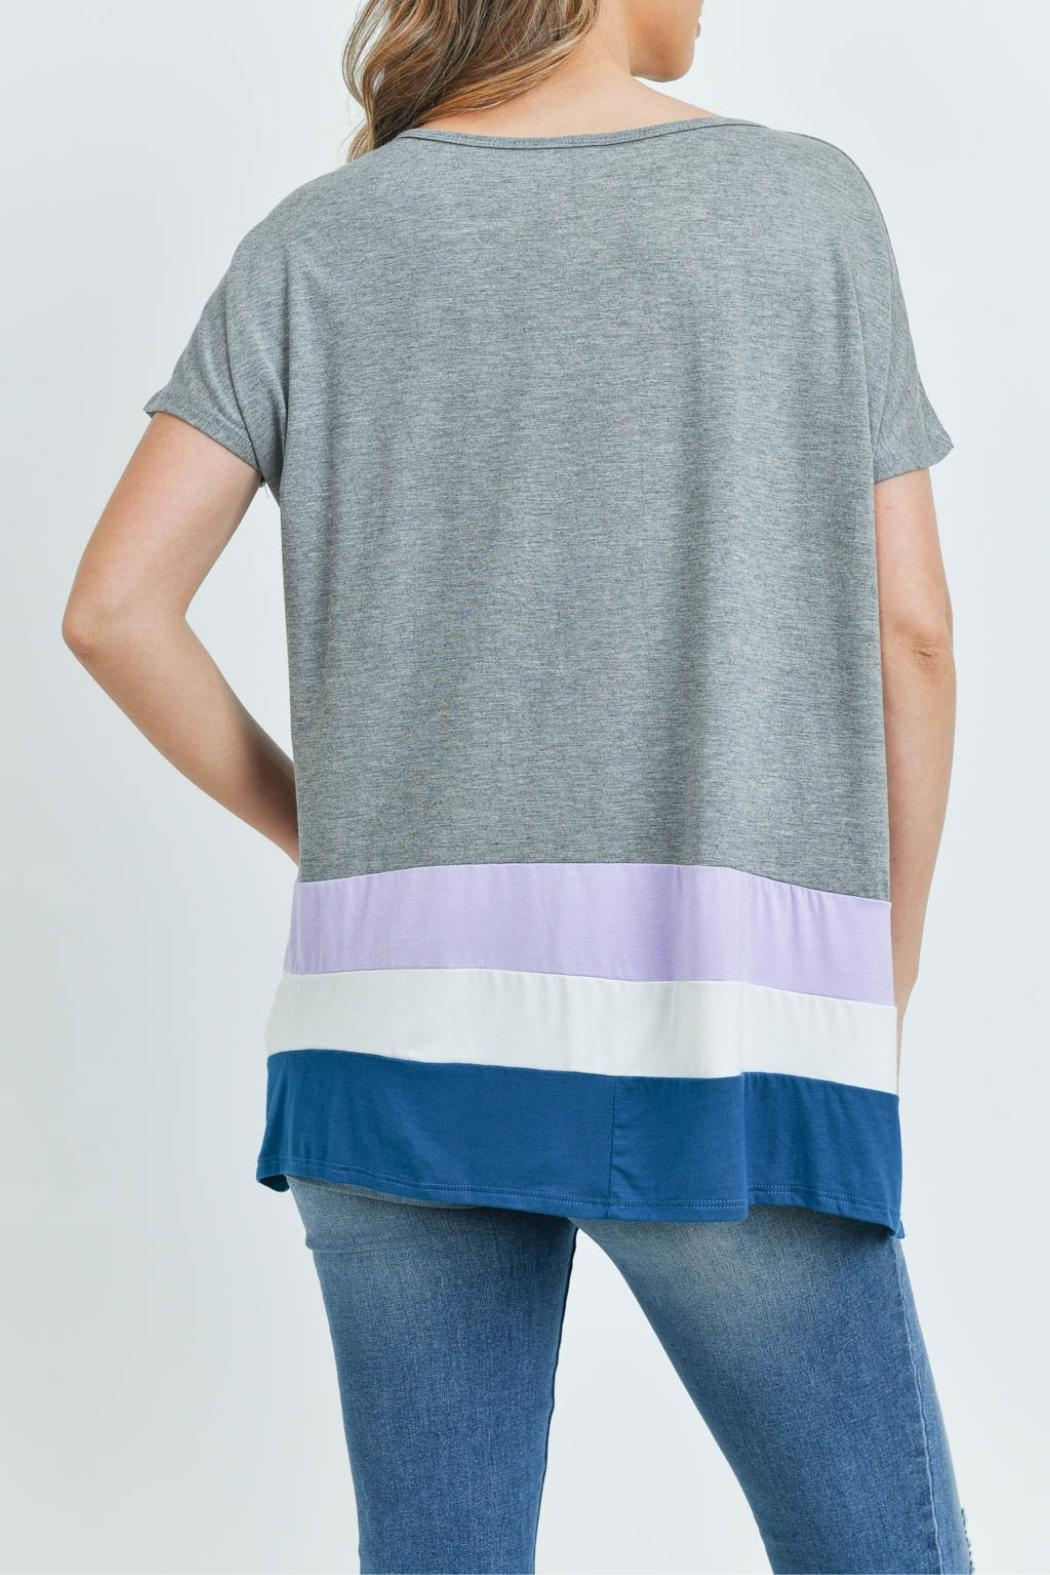 Unbranded Gray Bamboo Top - Back Cropped Image